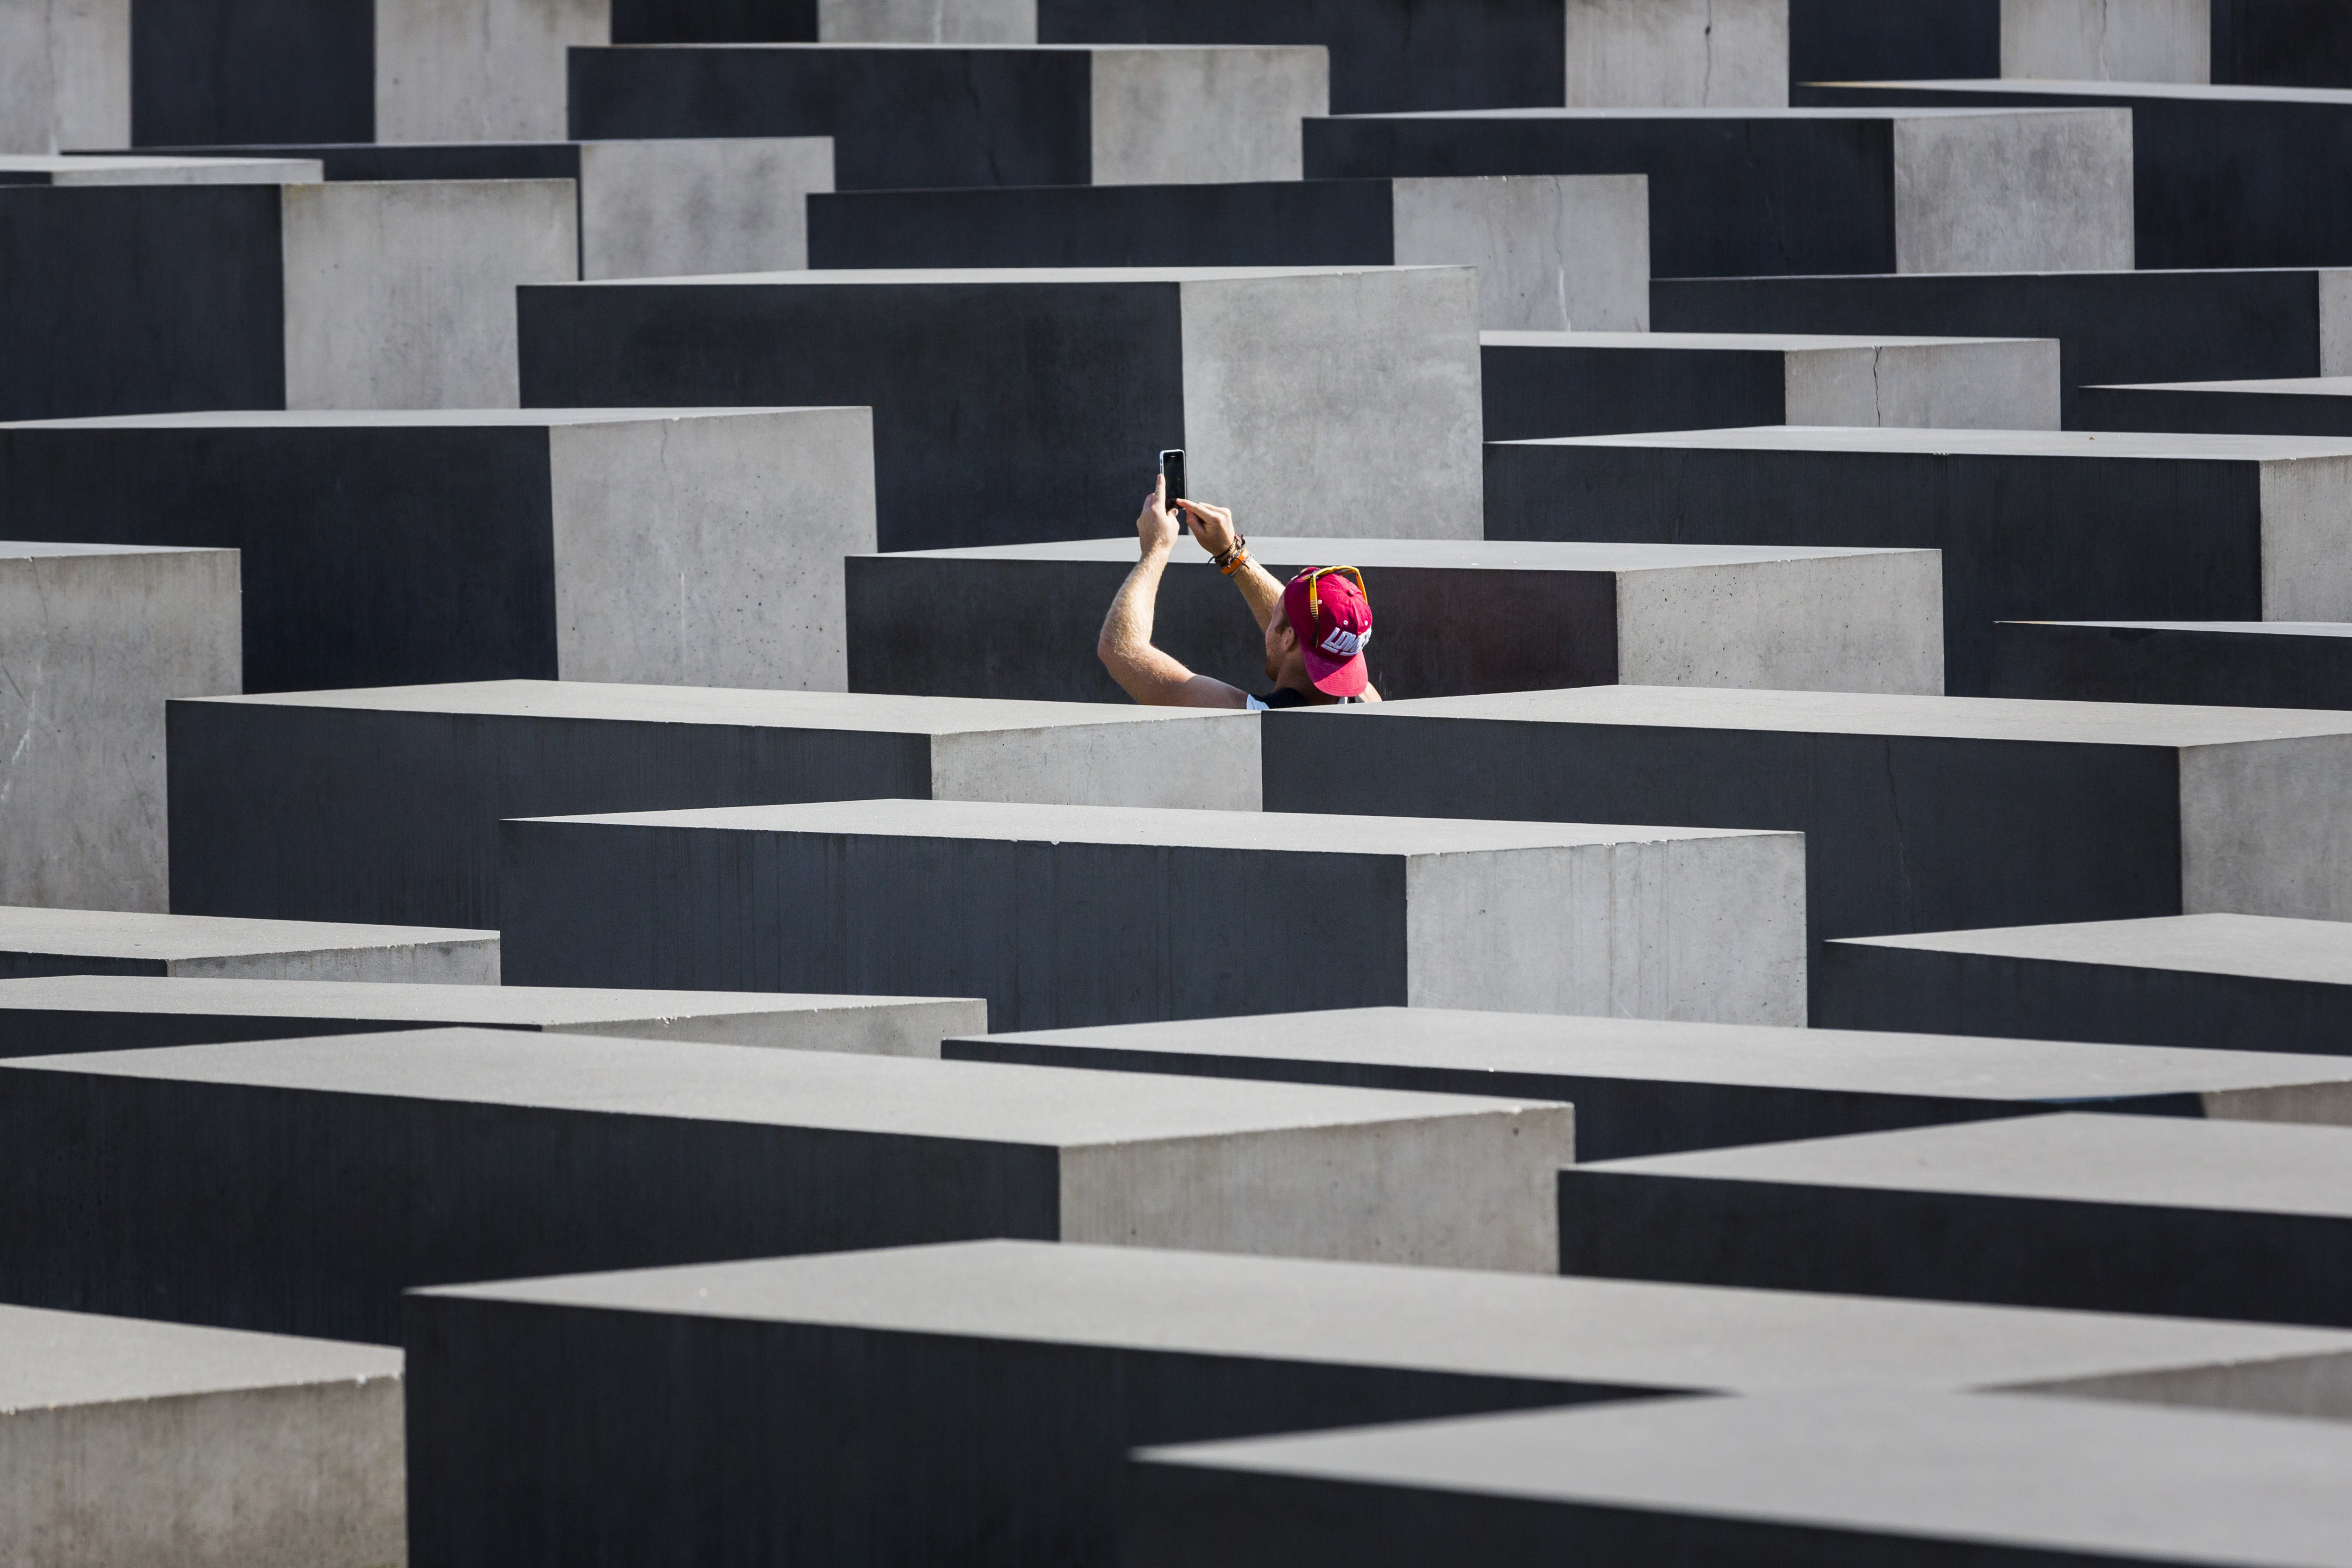 Tourist taking a photo of the concrete slabs at the Berlin Holocaust Museum in Sept. 04, 2014, in Berlin, Germany.